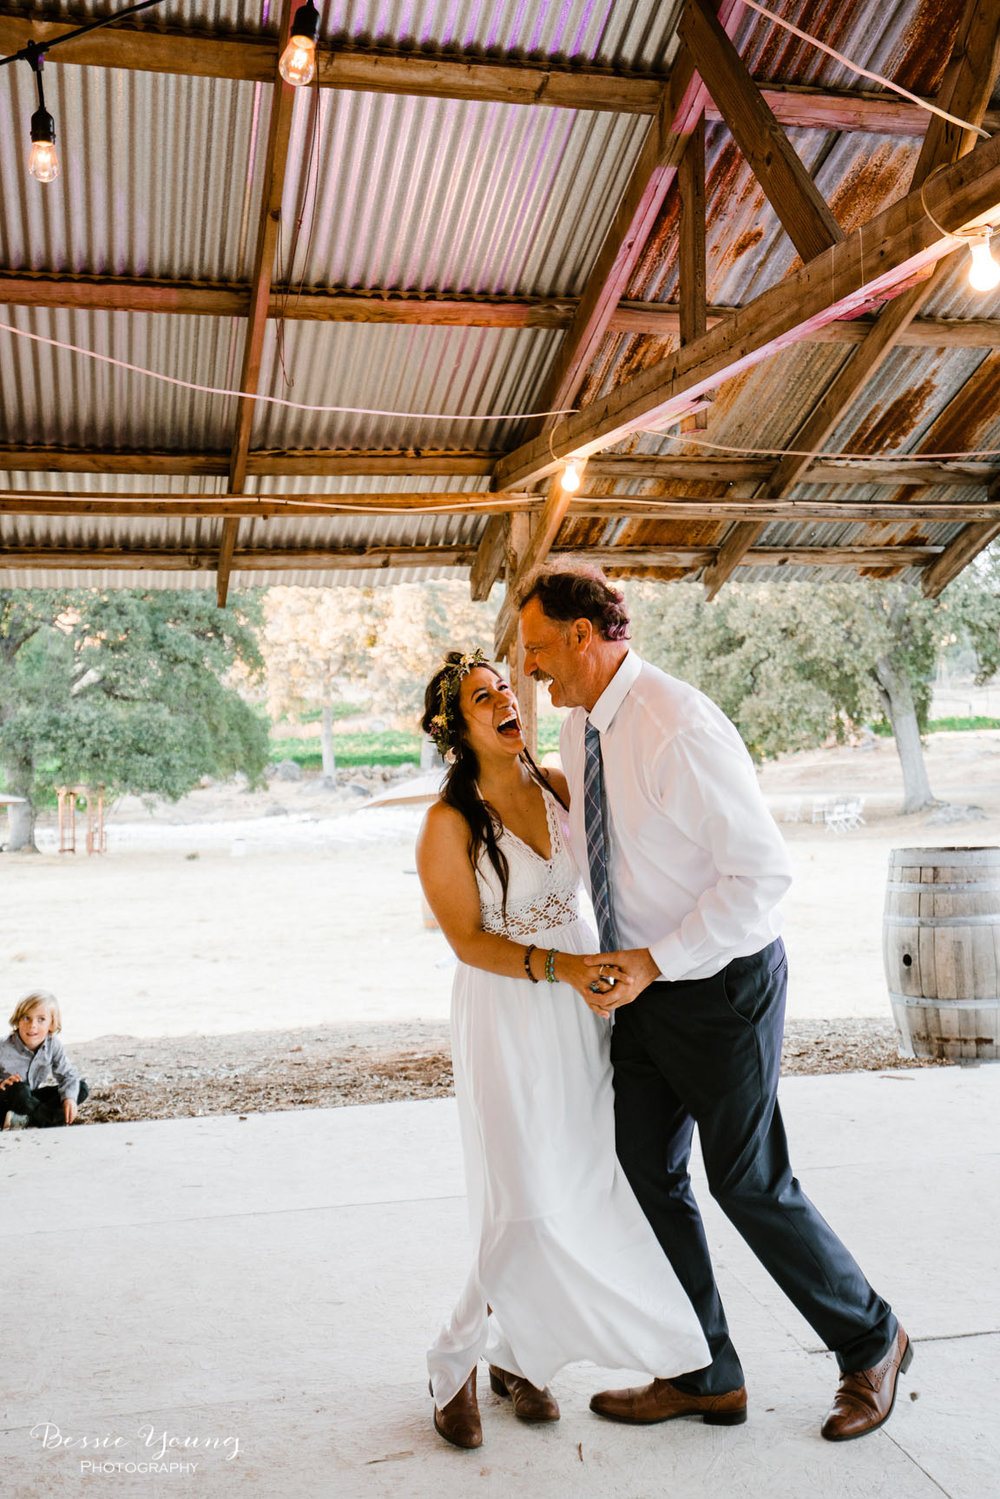 Zuni Vineyards Wedding Sonora - Samira and Justin Bessie Young Photography 2018 a-115.jpg